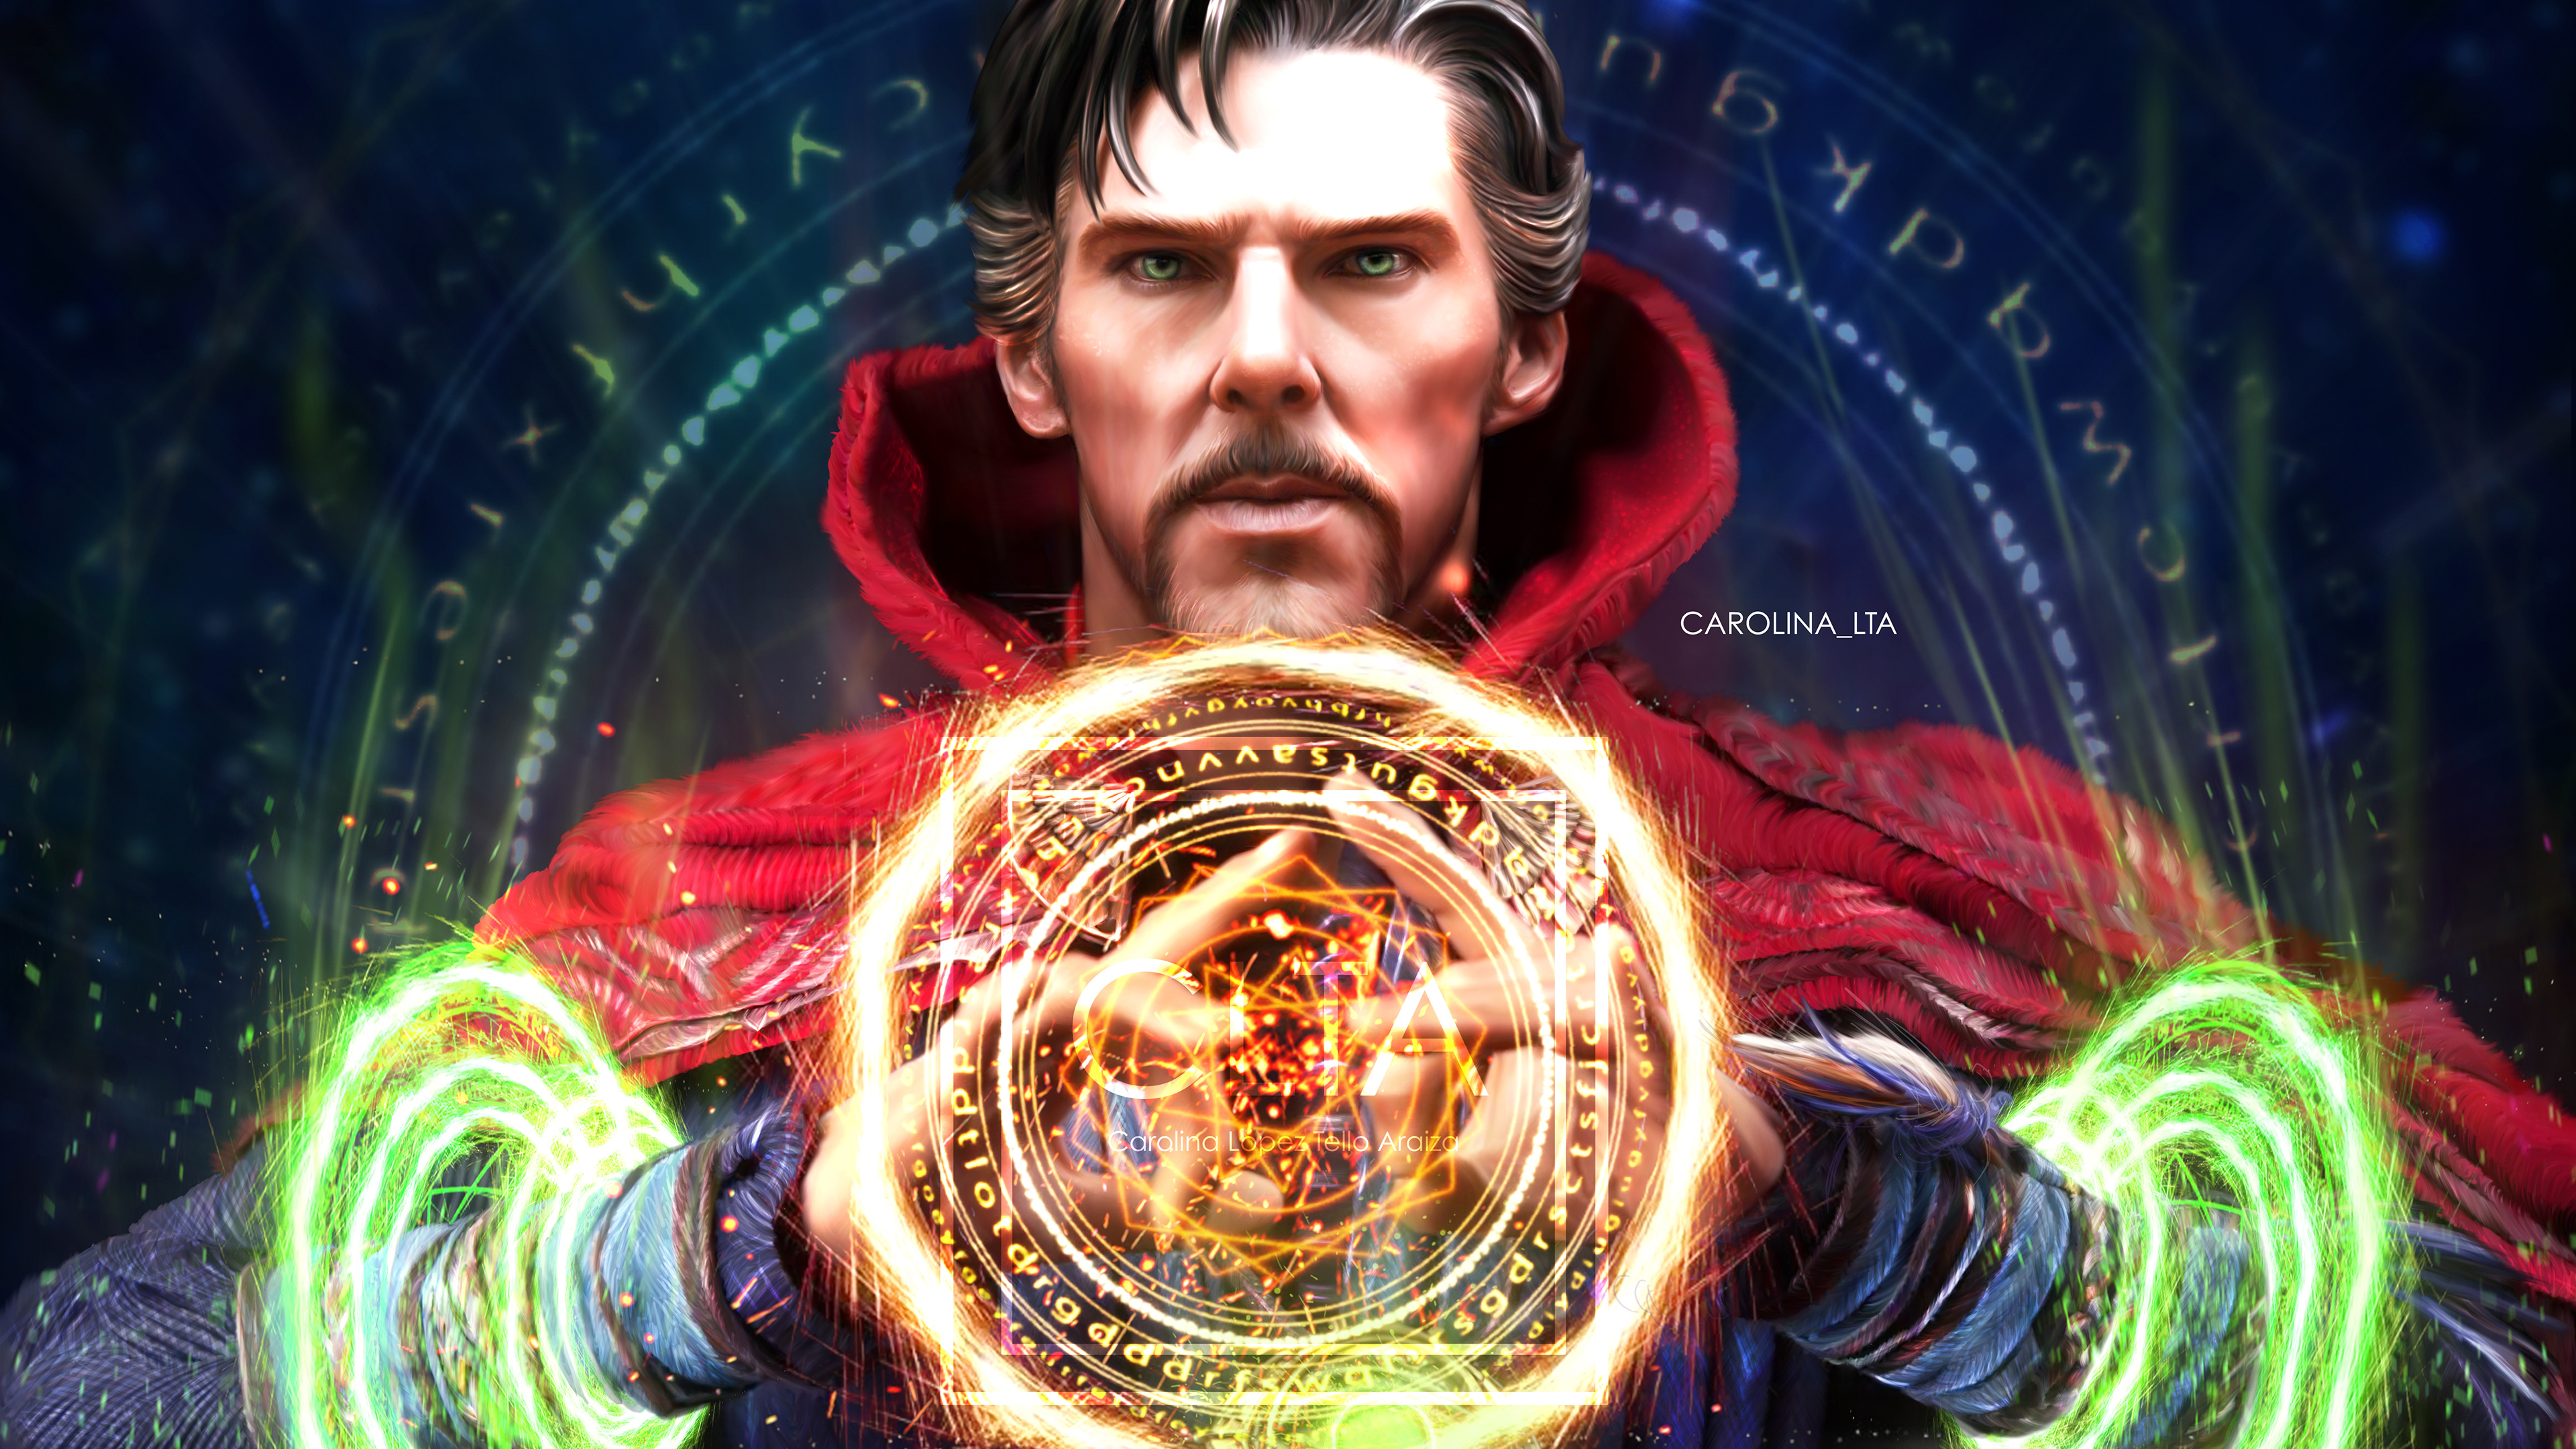 Dr Strange Wallpaper 4k - HD Wallpaper